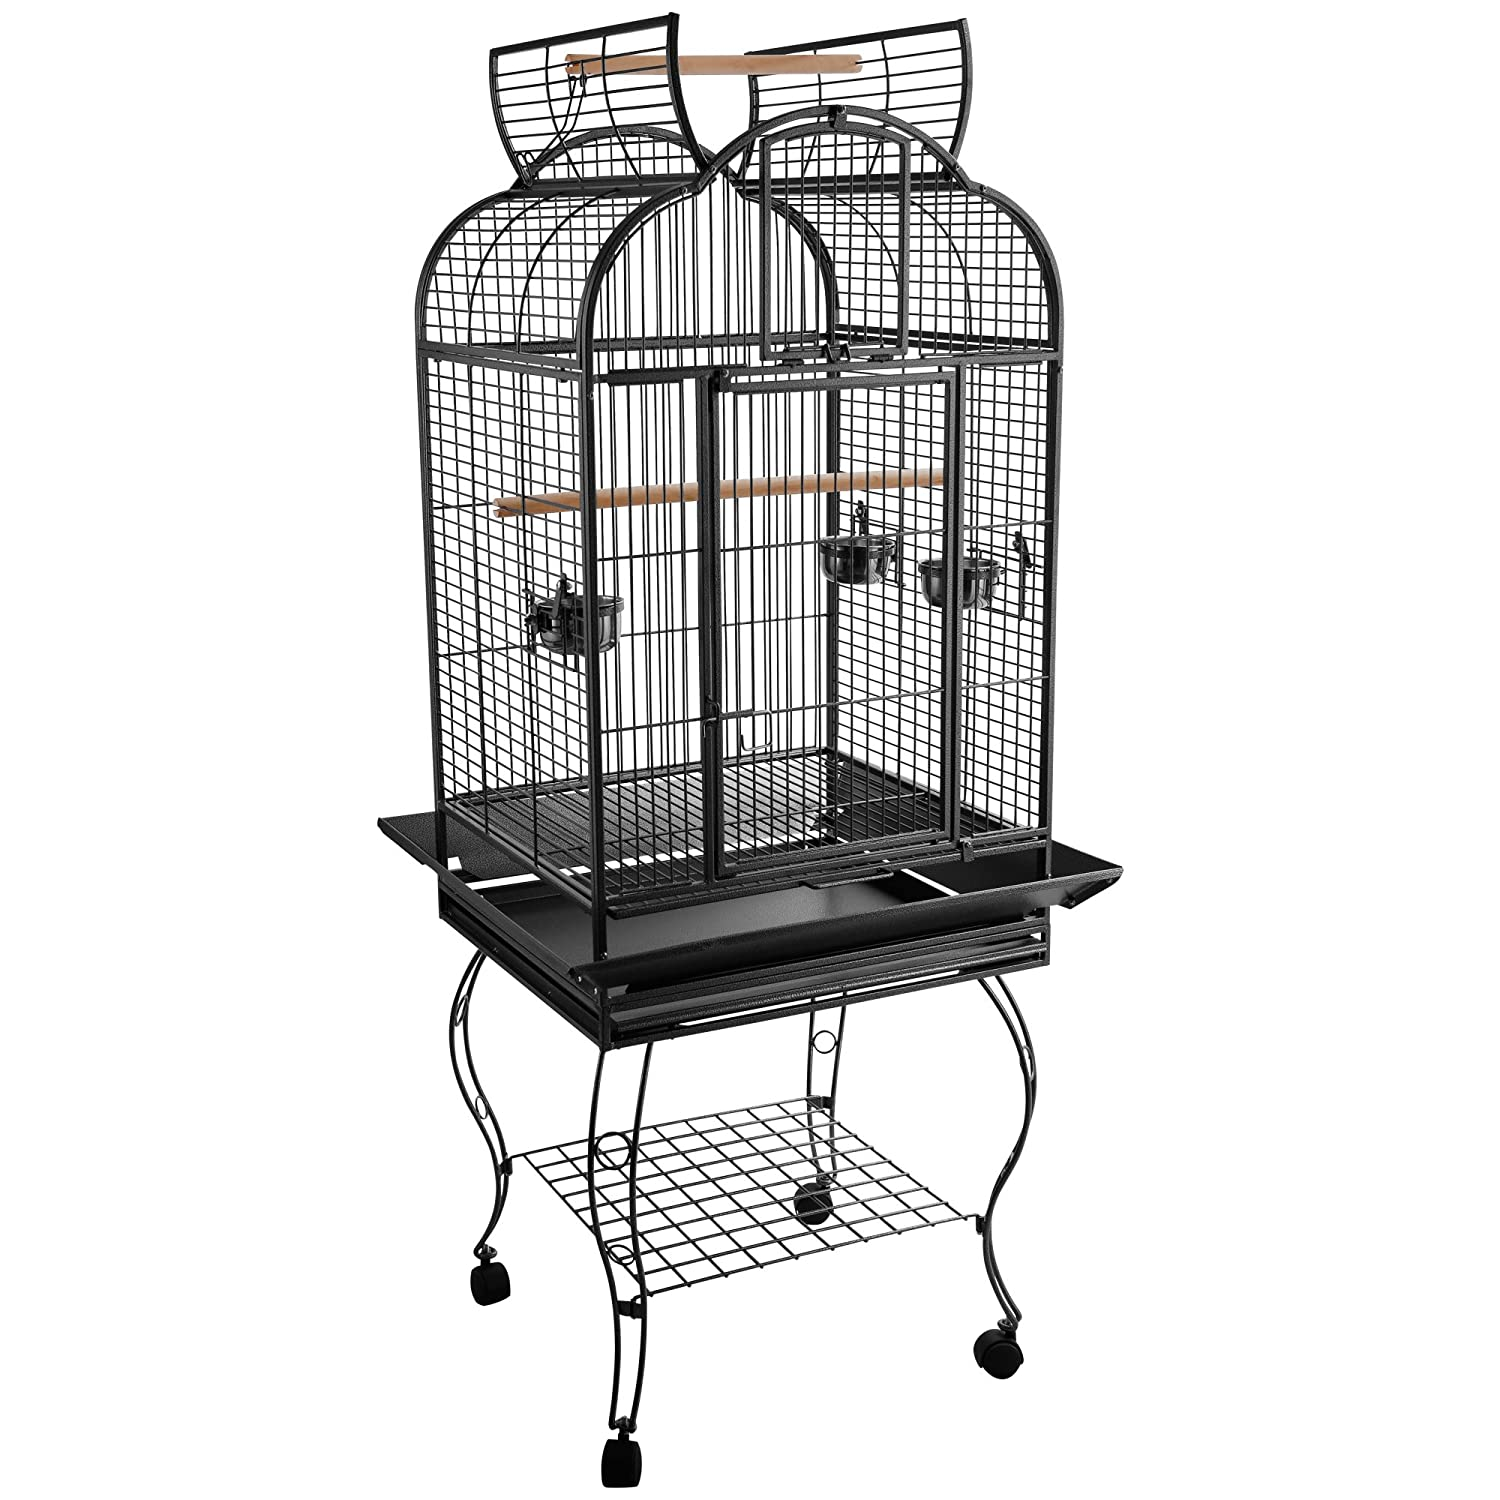 PawHut 63-inch Large Bird Parrot Cage Rolling Cockatiel Finch Macaw Aviary Cage Open Play Top with 2 Perch 3 Stainless Steel Cup Pet Furniture Aosom Canada